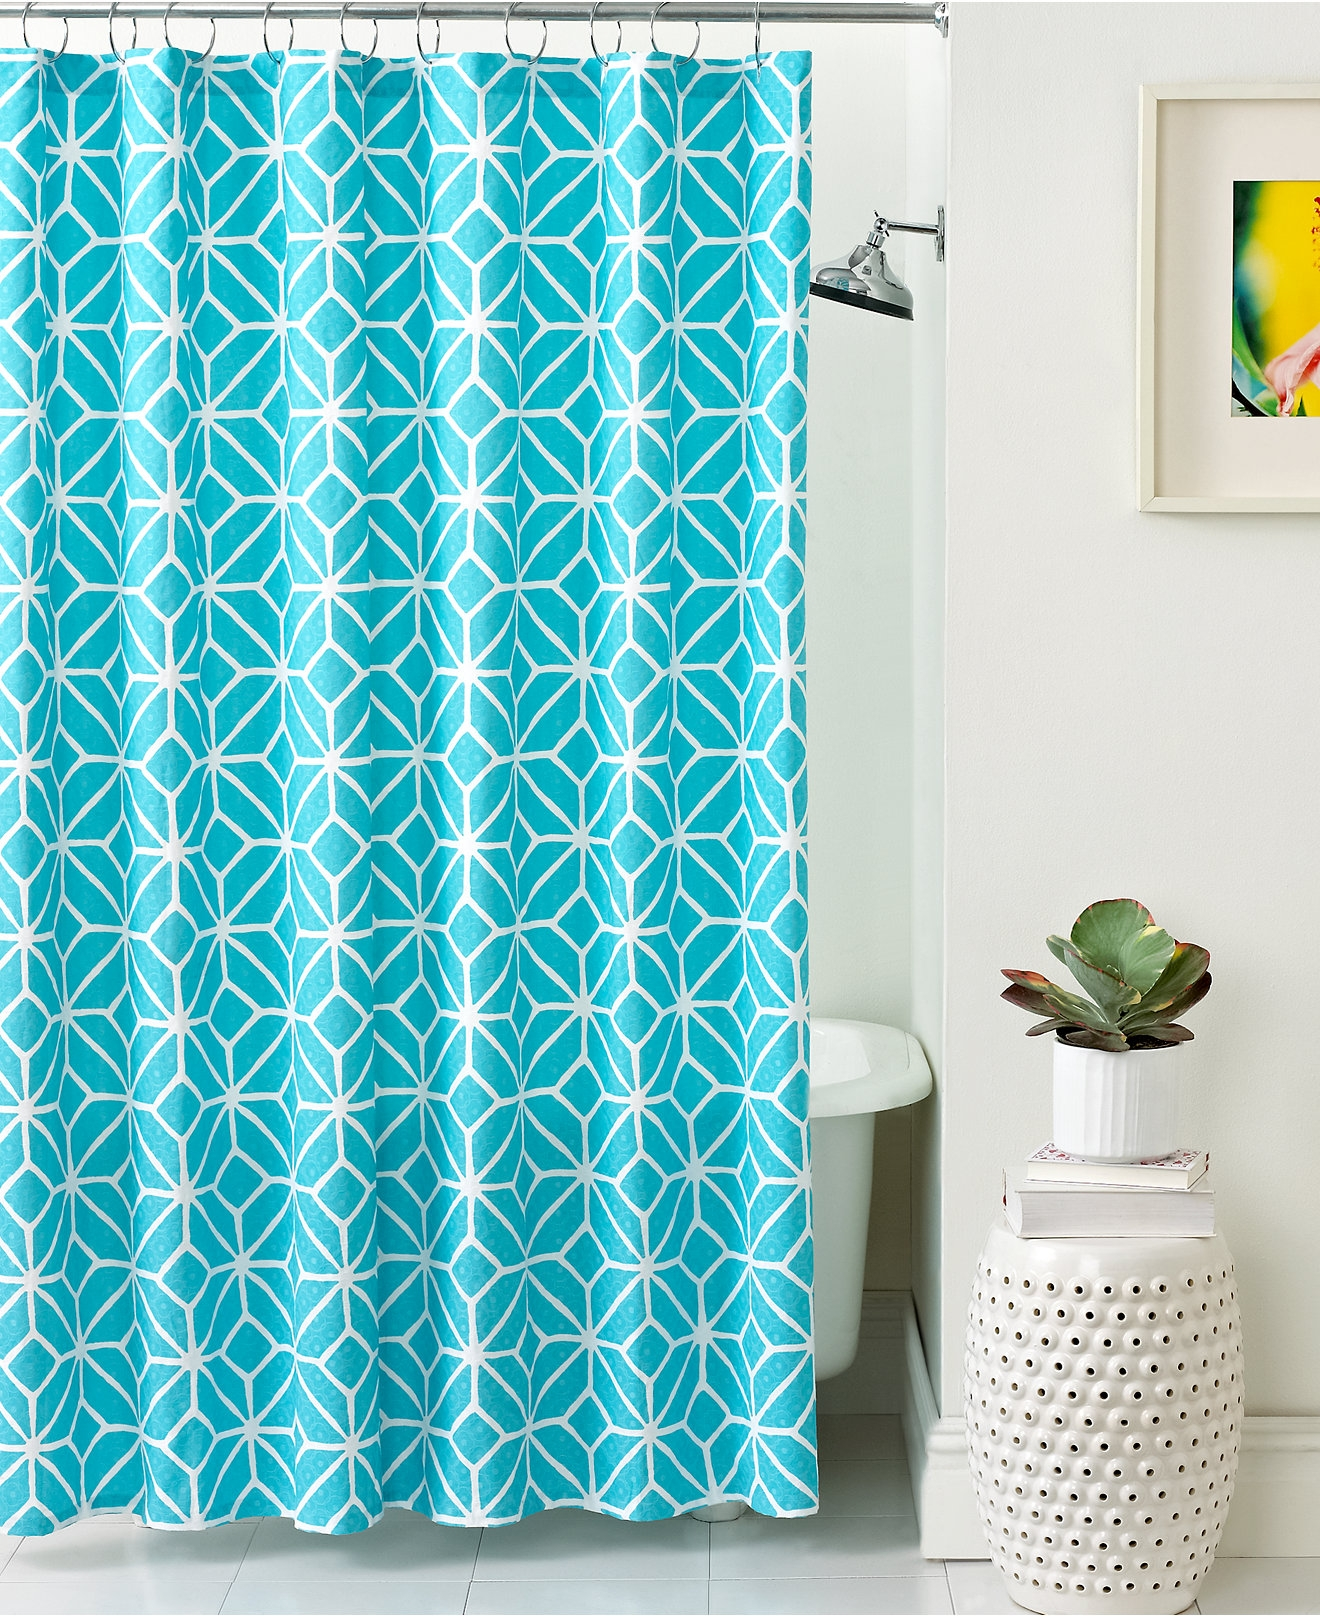 Bathroom Grey Patterned Ikat Shower Curtain For Bathroom Inside Turquoise Trellis Curtains (View 14 of 25)